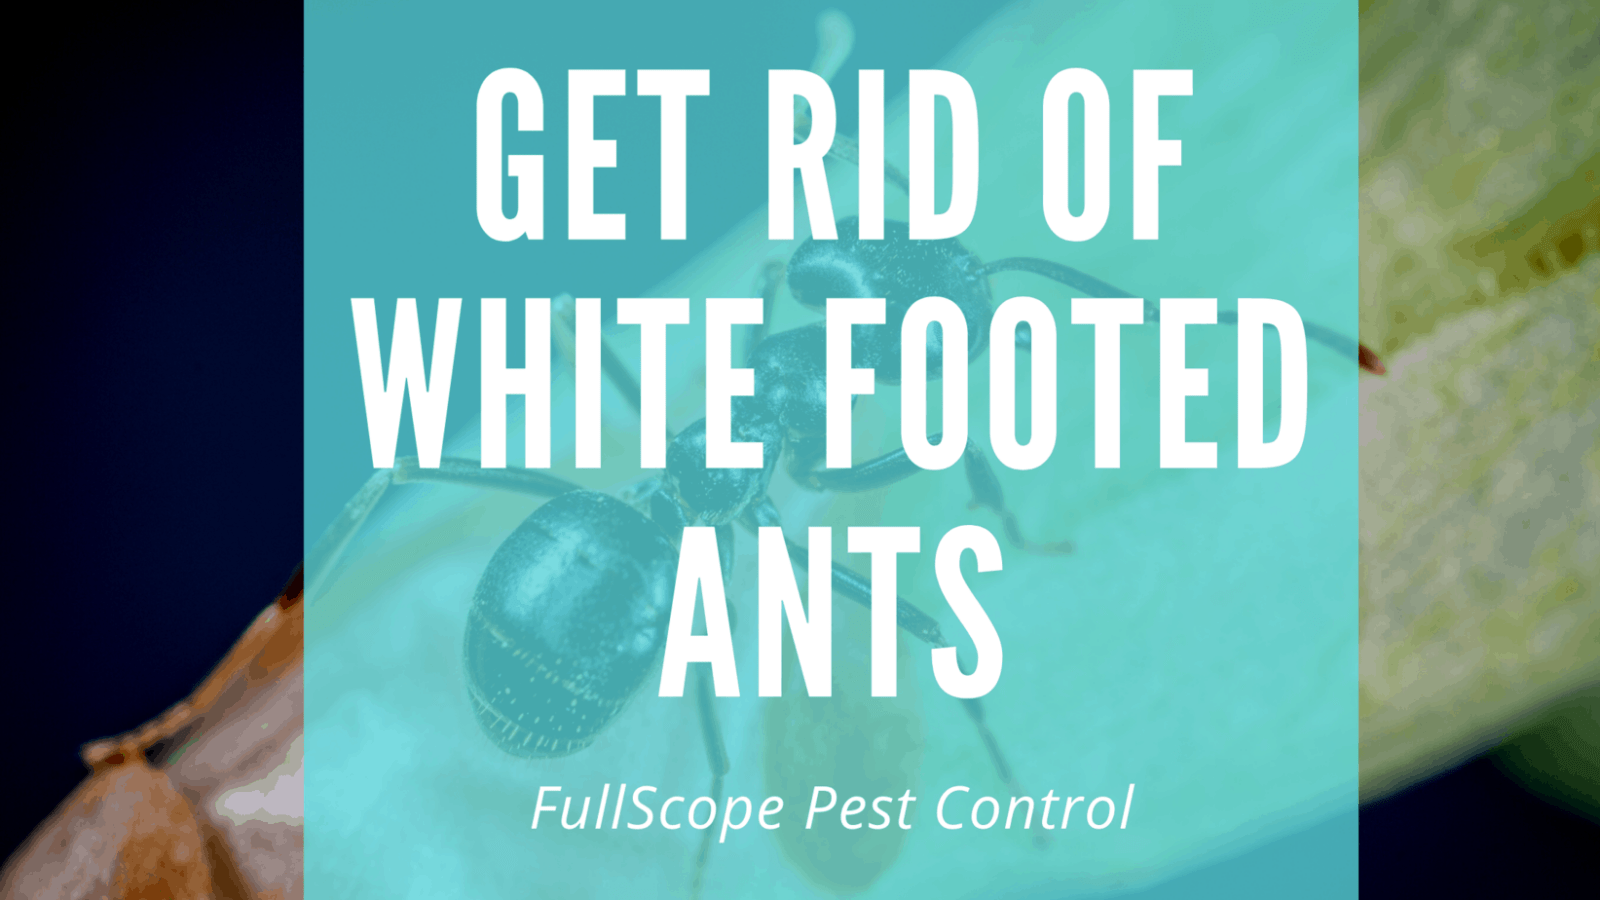 How to Get Rid of White-footed Ants in Your Humble, TX House and Yard